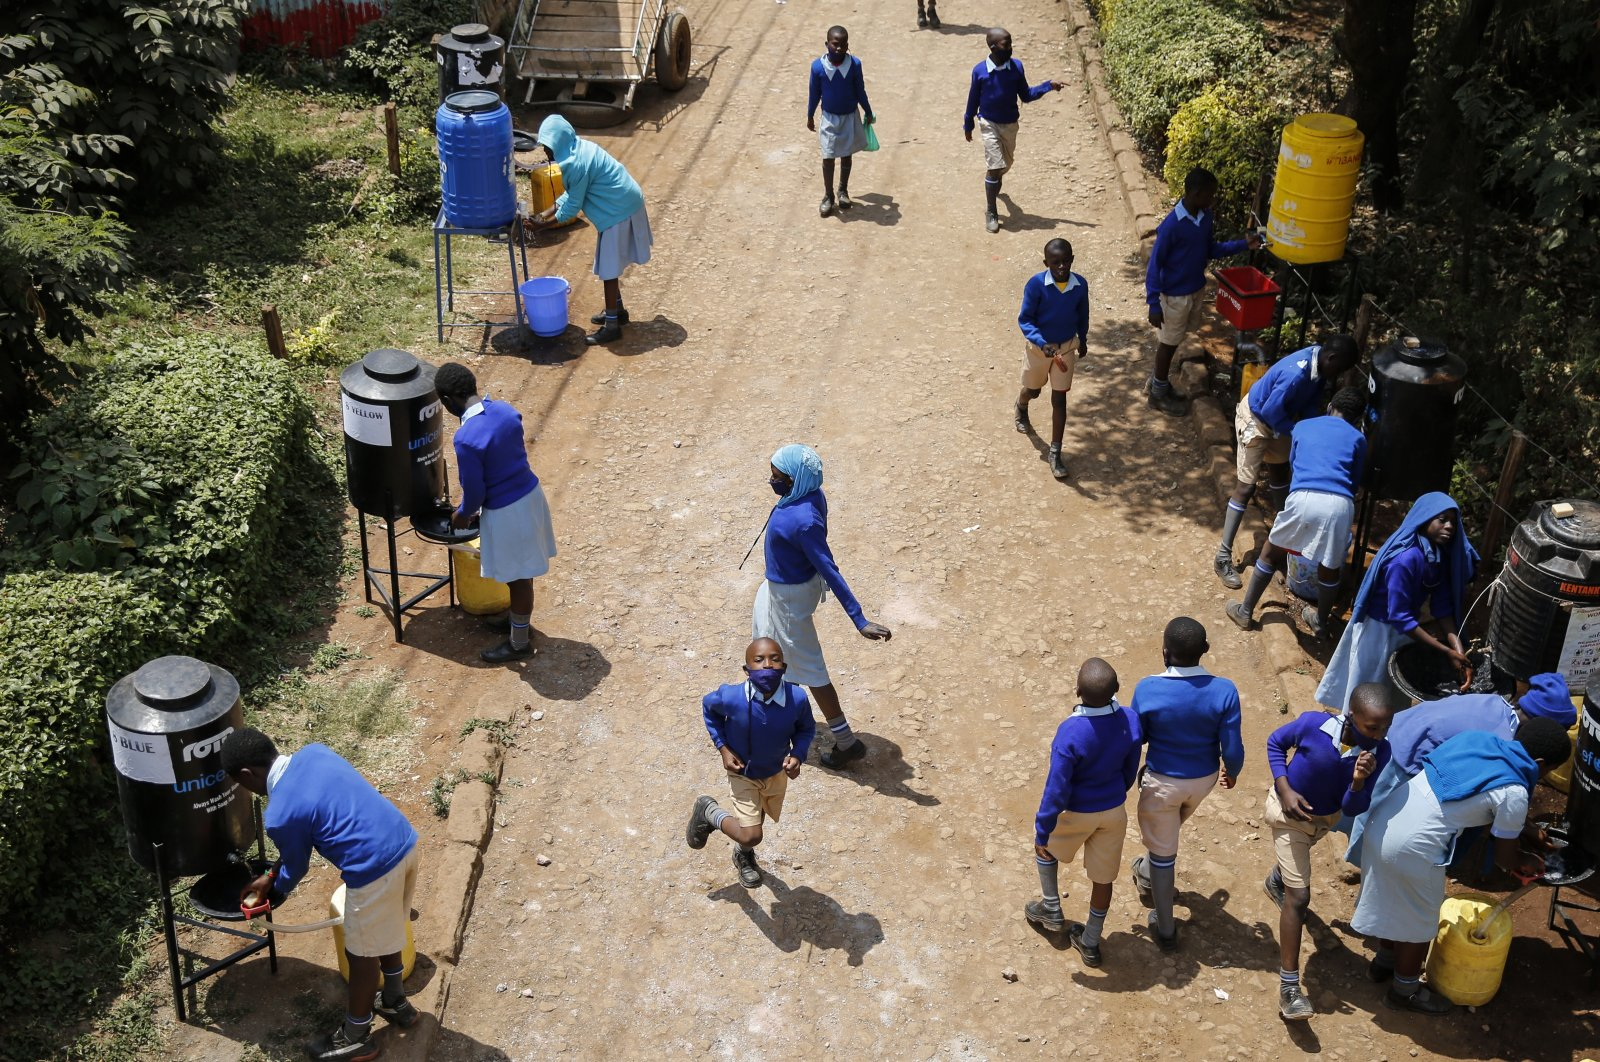 Schoolchildren sanitize their hands at washing stations as they arrive at the Olympic Primary School in Kibera, one of the capital Nairobi's poorest areas, as schools partially reopened to allow students to prepare for examinations, in Kenya, Oct. 12, 2020. (AP Photo)